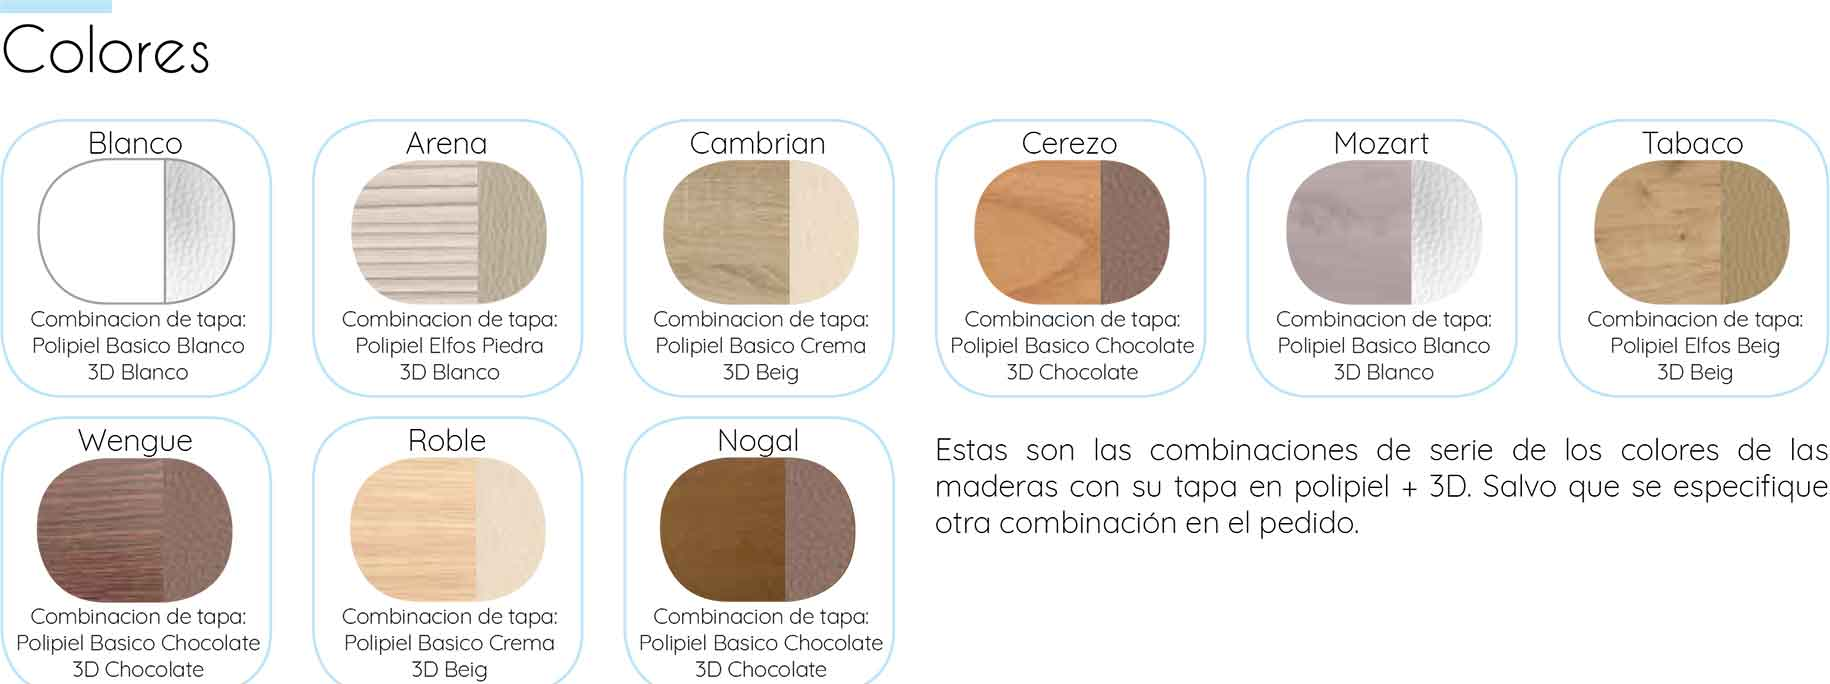 yc-colores-canapes